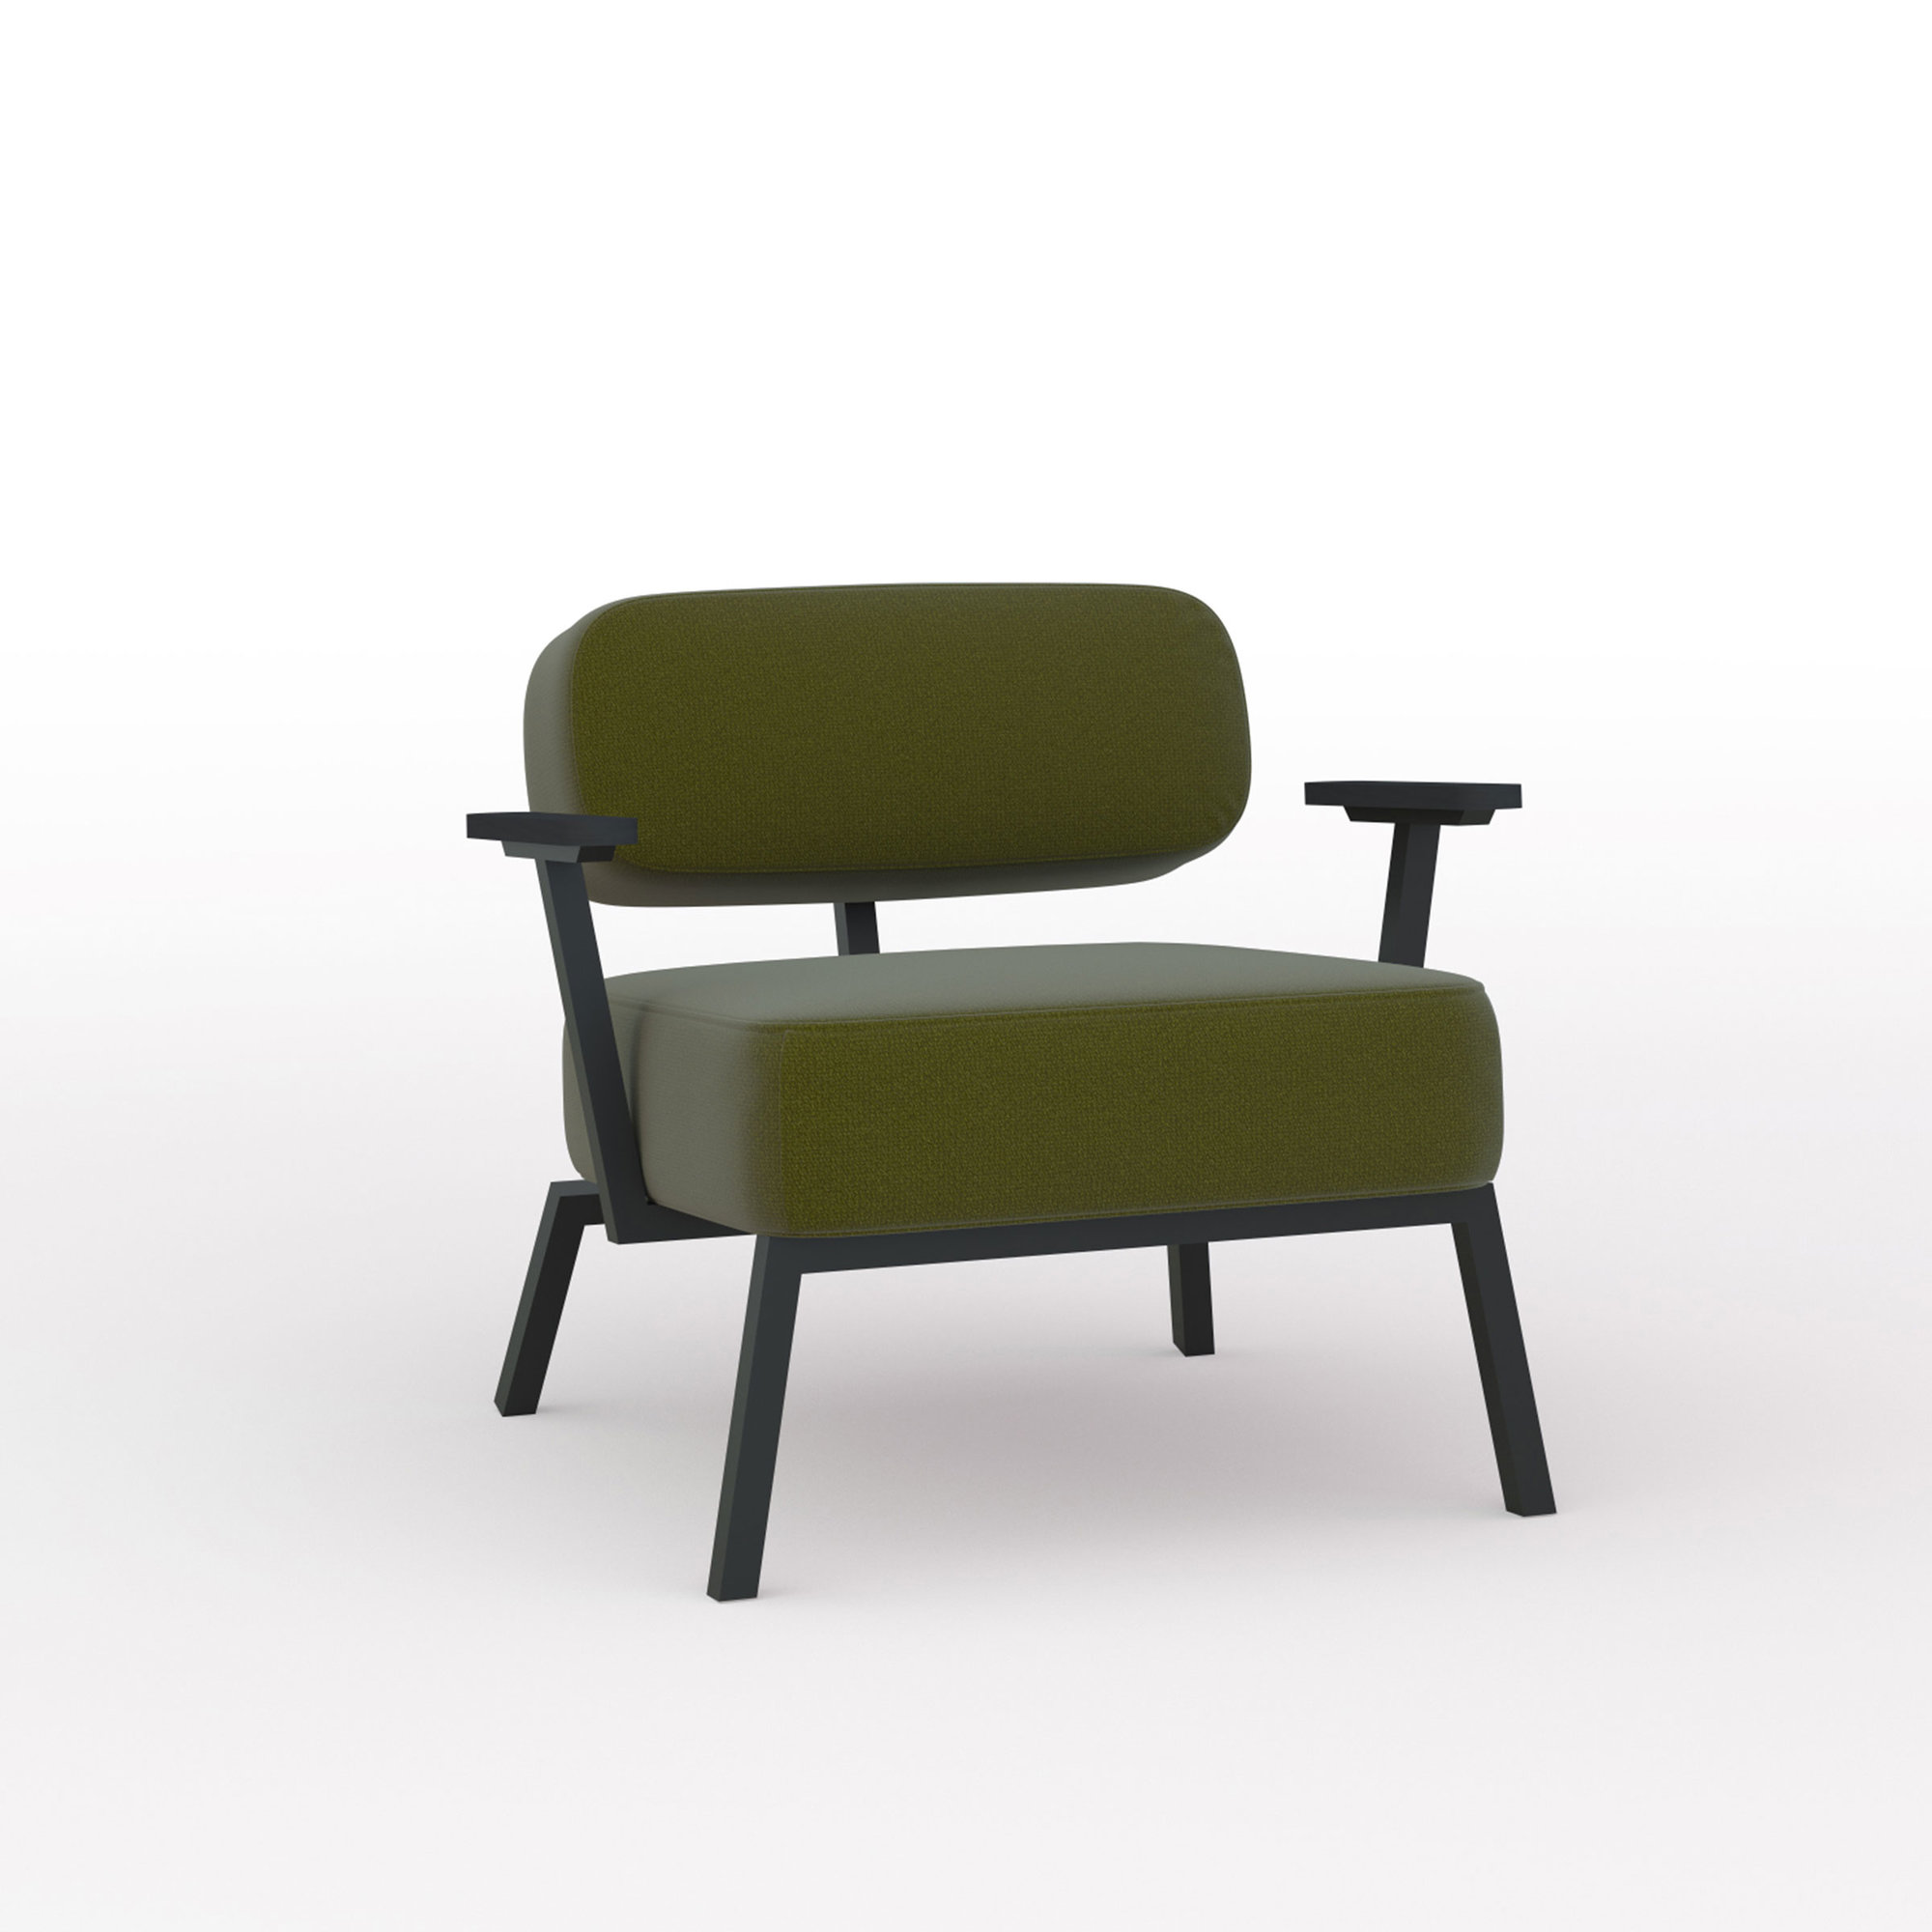 Design zitbank | Ode lounge chair 1 seater with armrest steelcut2 985 | Studio HENK | Listing_image